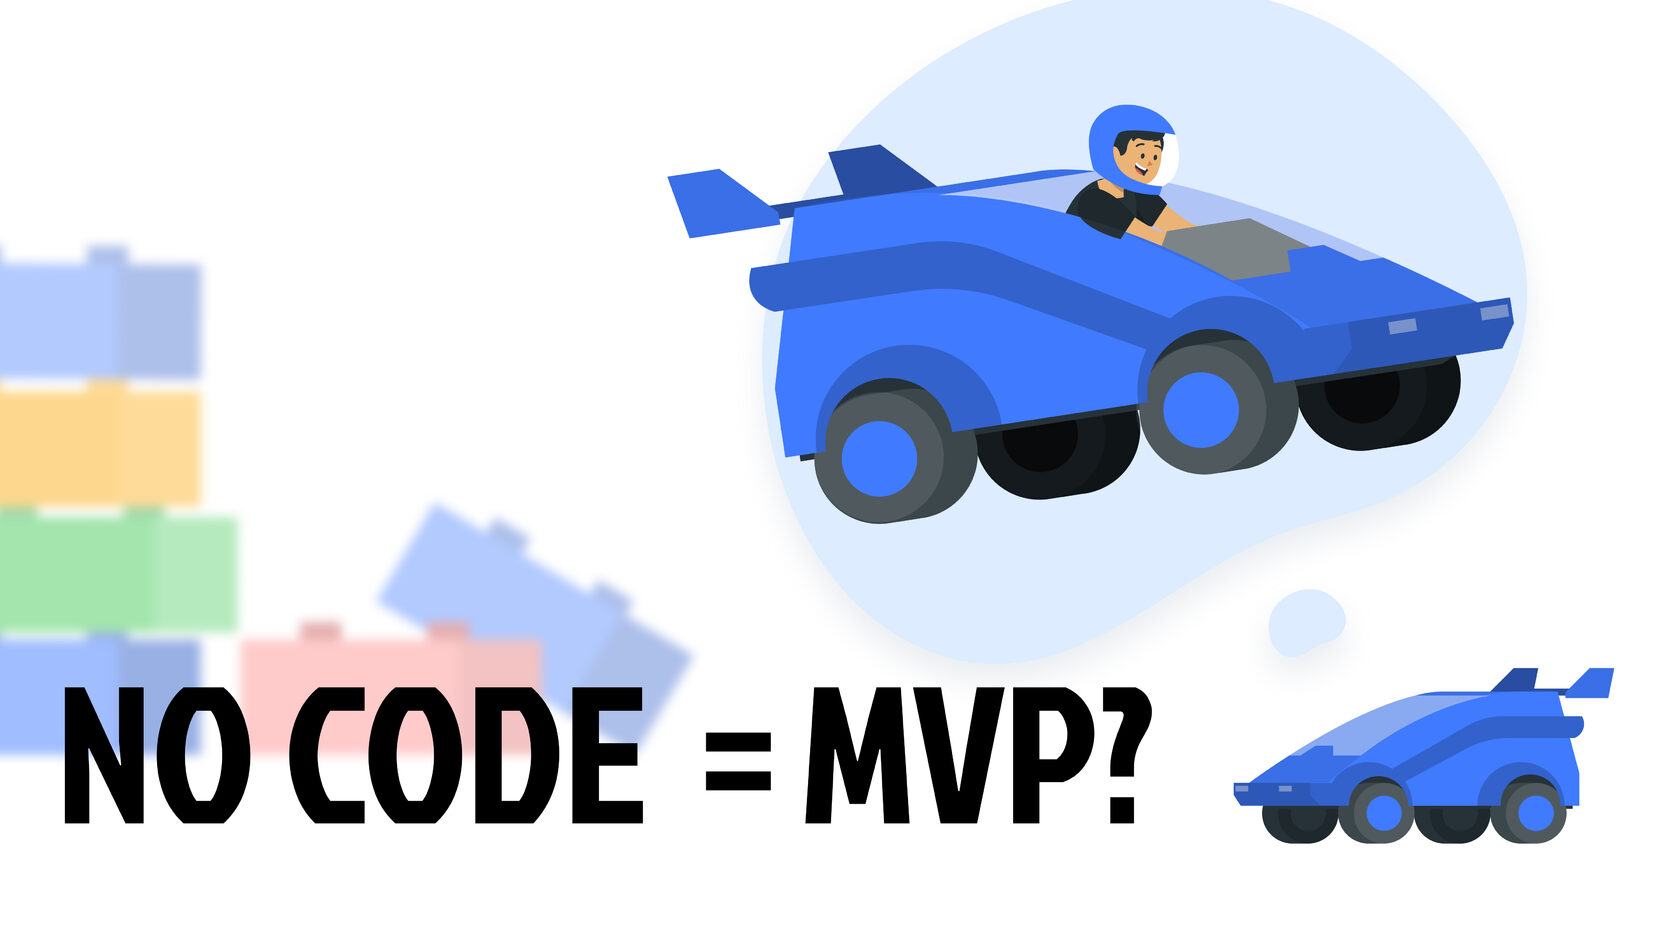 Why the majority of no-code tools are only good for MVPs?